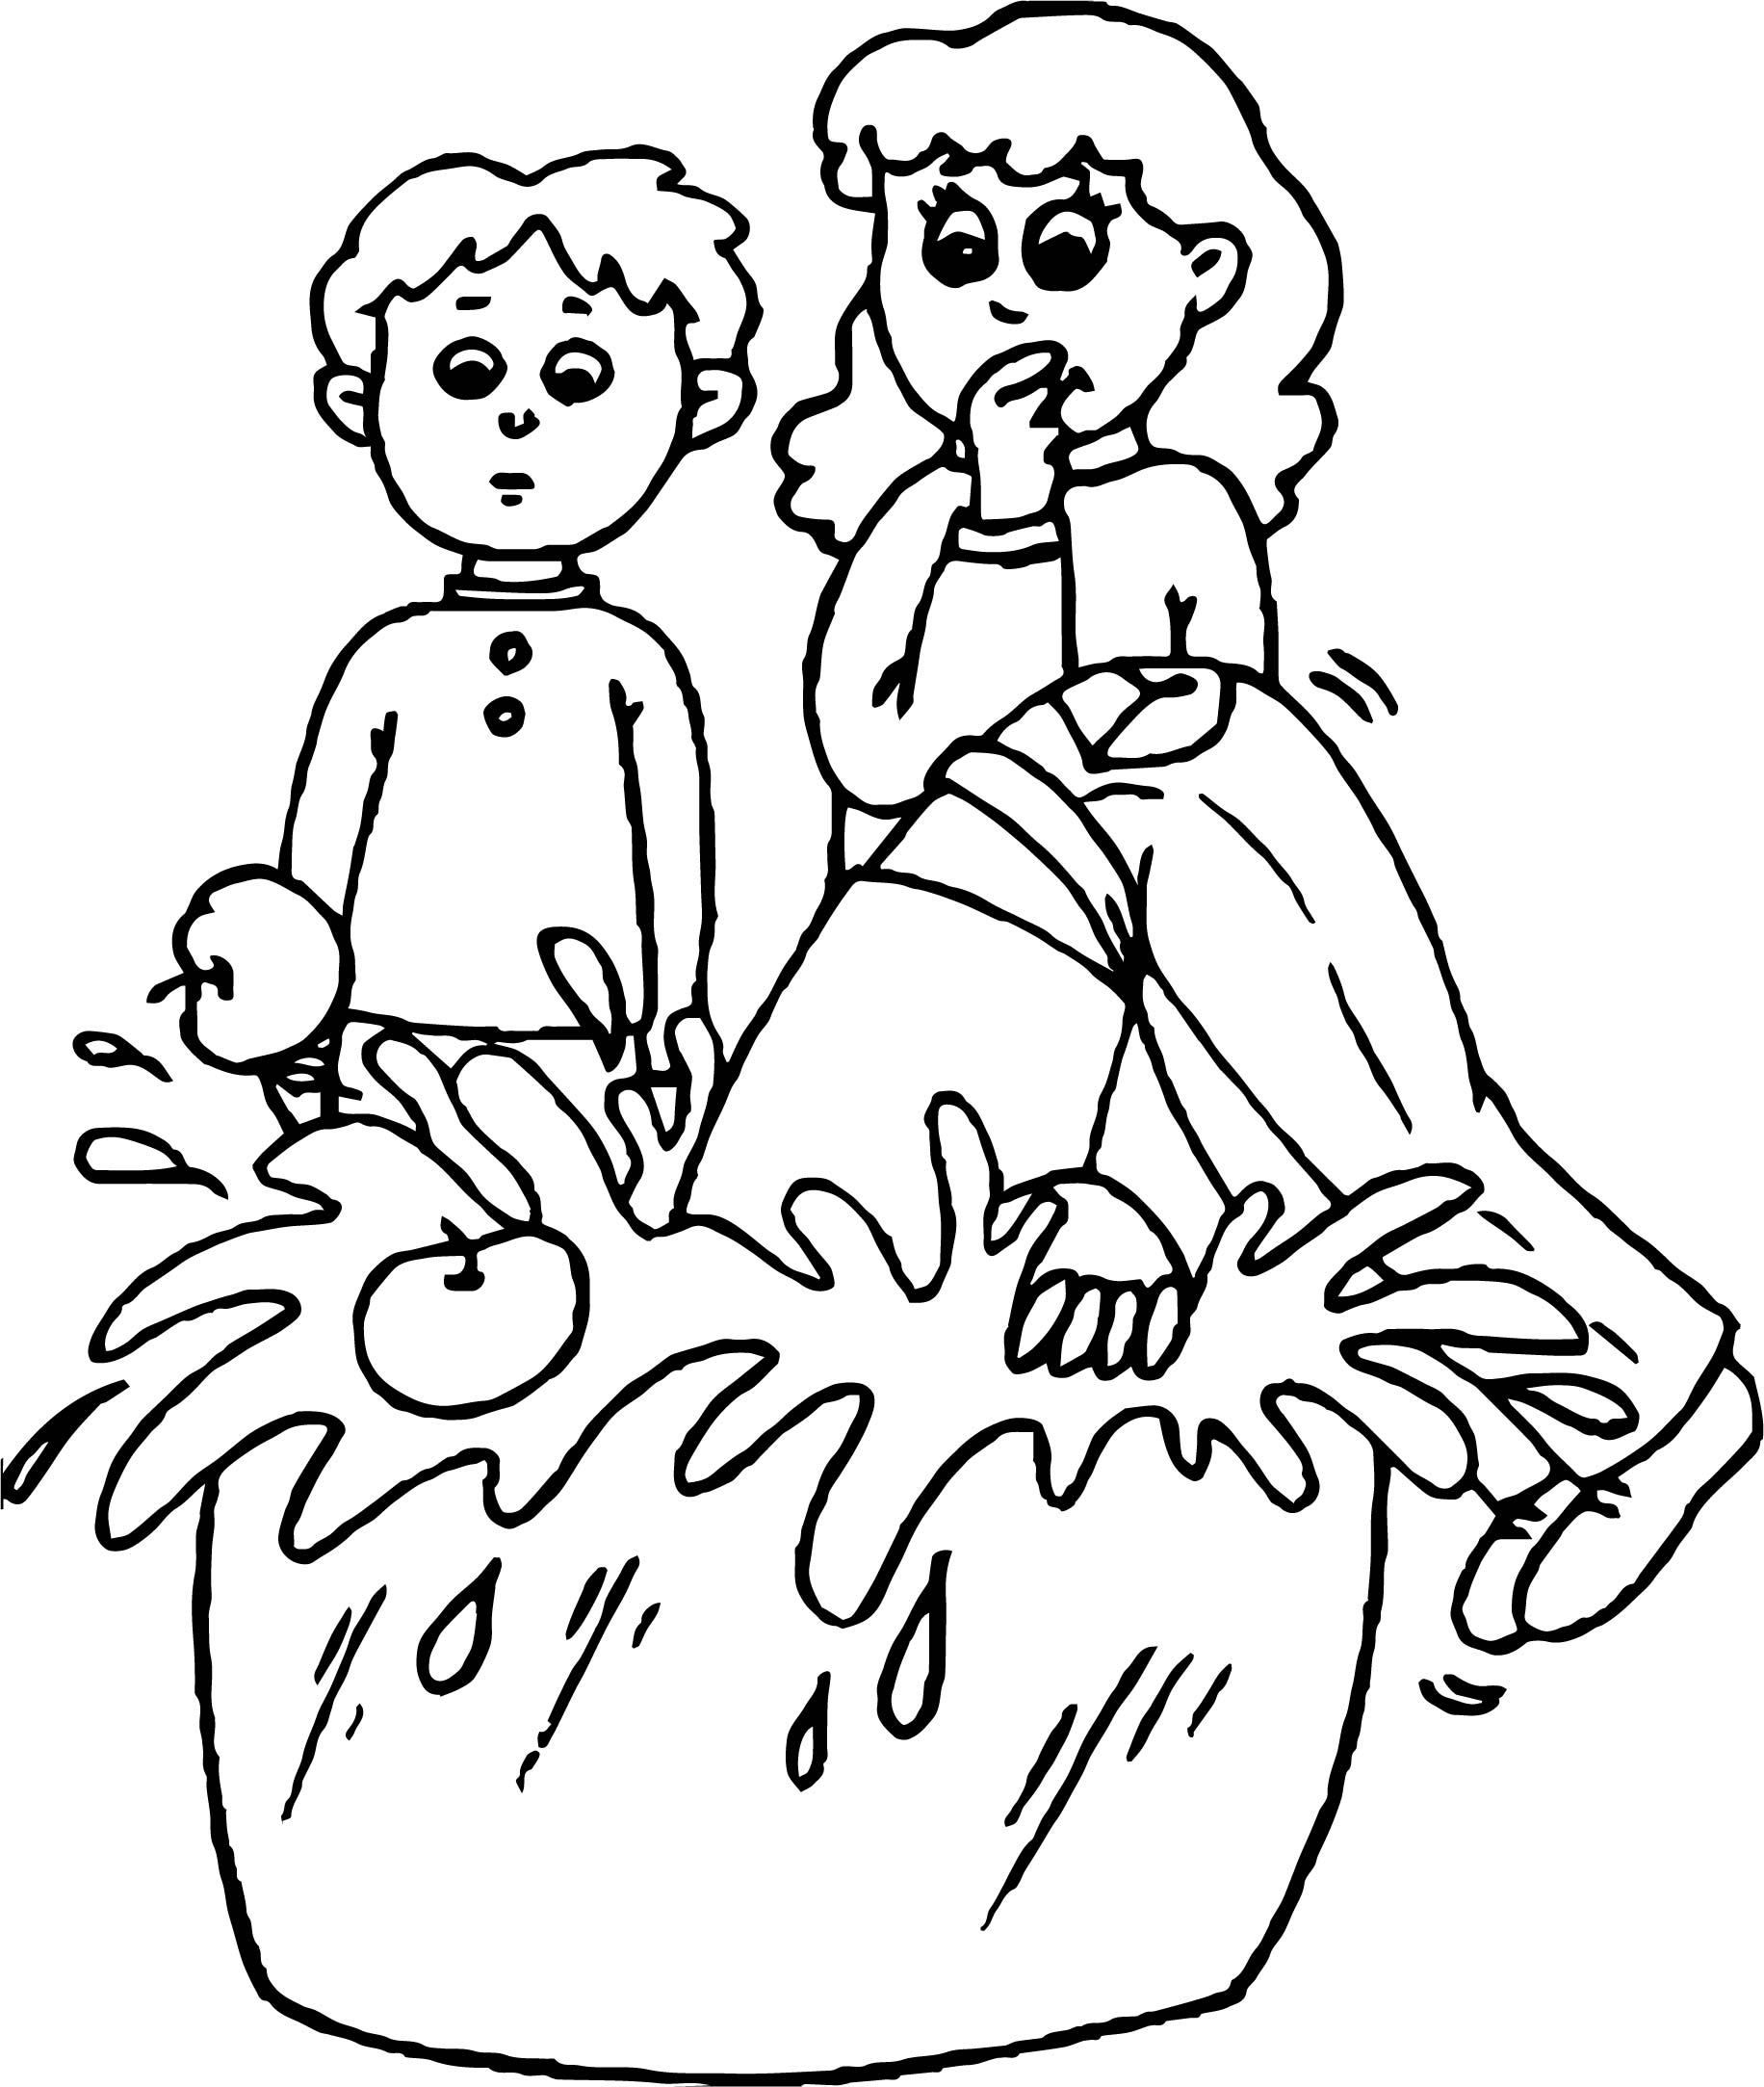 1832x2167 Bobbing For Apples Coloring Page Wecoloringpage